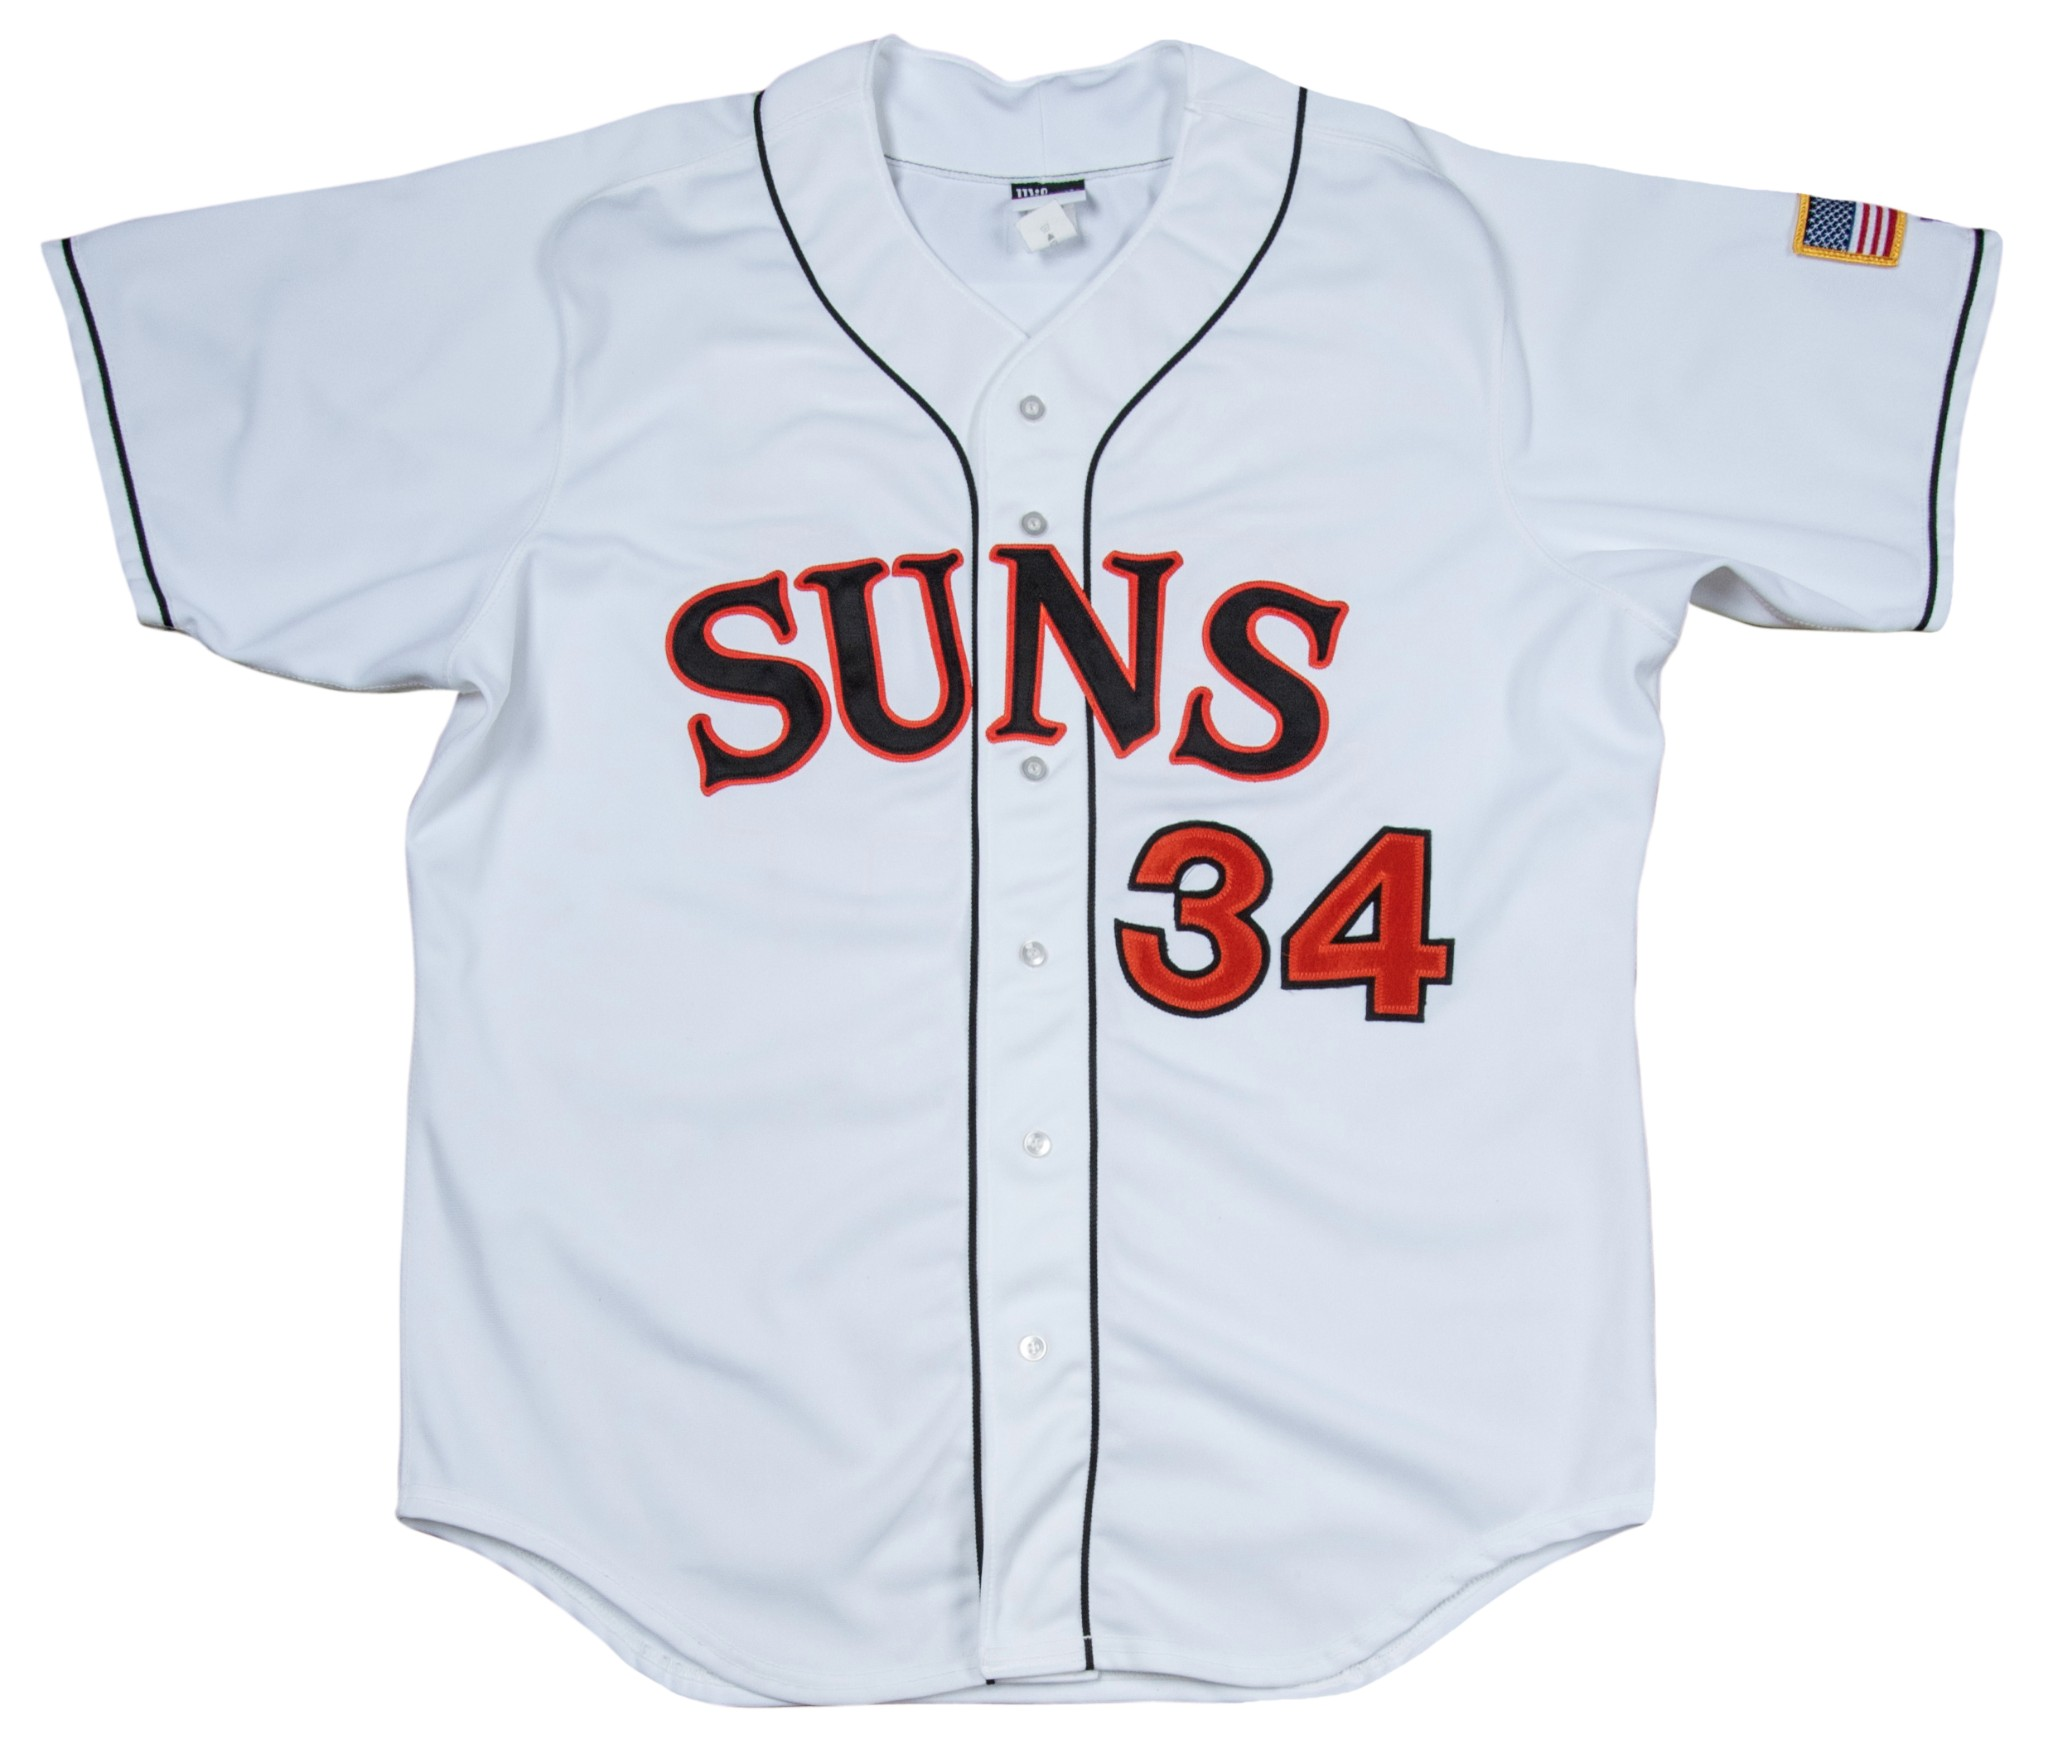 de91ff304 2011 Bryce Harper Rookie Game Used Washington Nationals Minor League Suns  Jersey